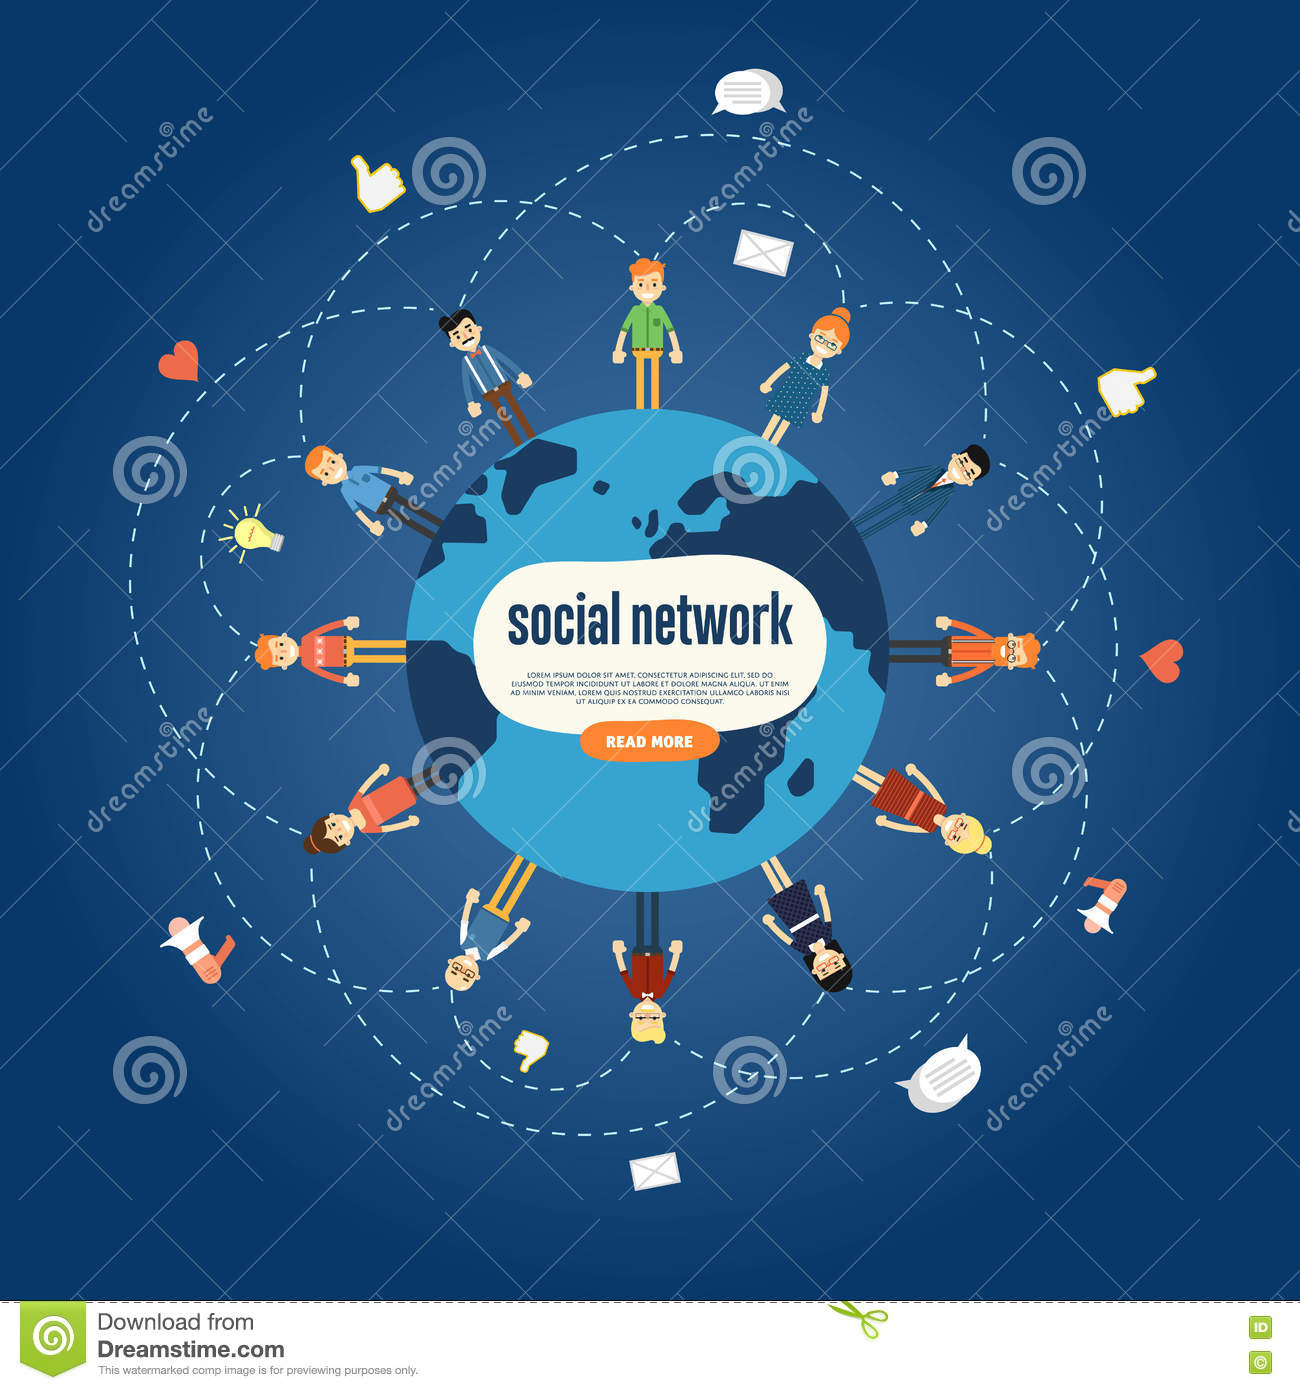 social-network-banner-connected-icons-group-people-around-globe-blue-background-vector-illustration-teamwork-concept-77907395.jpg